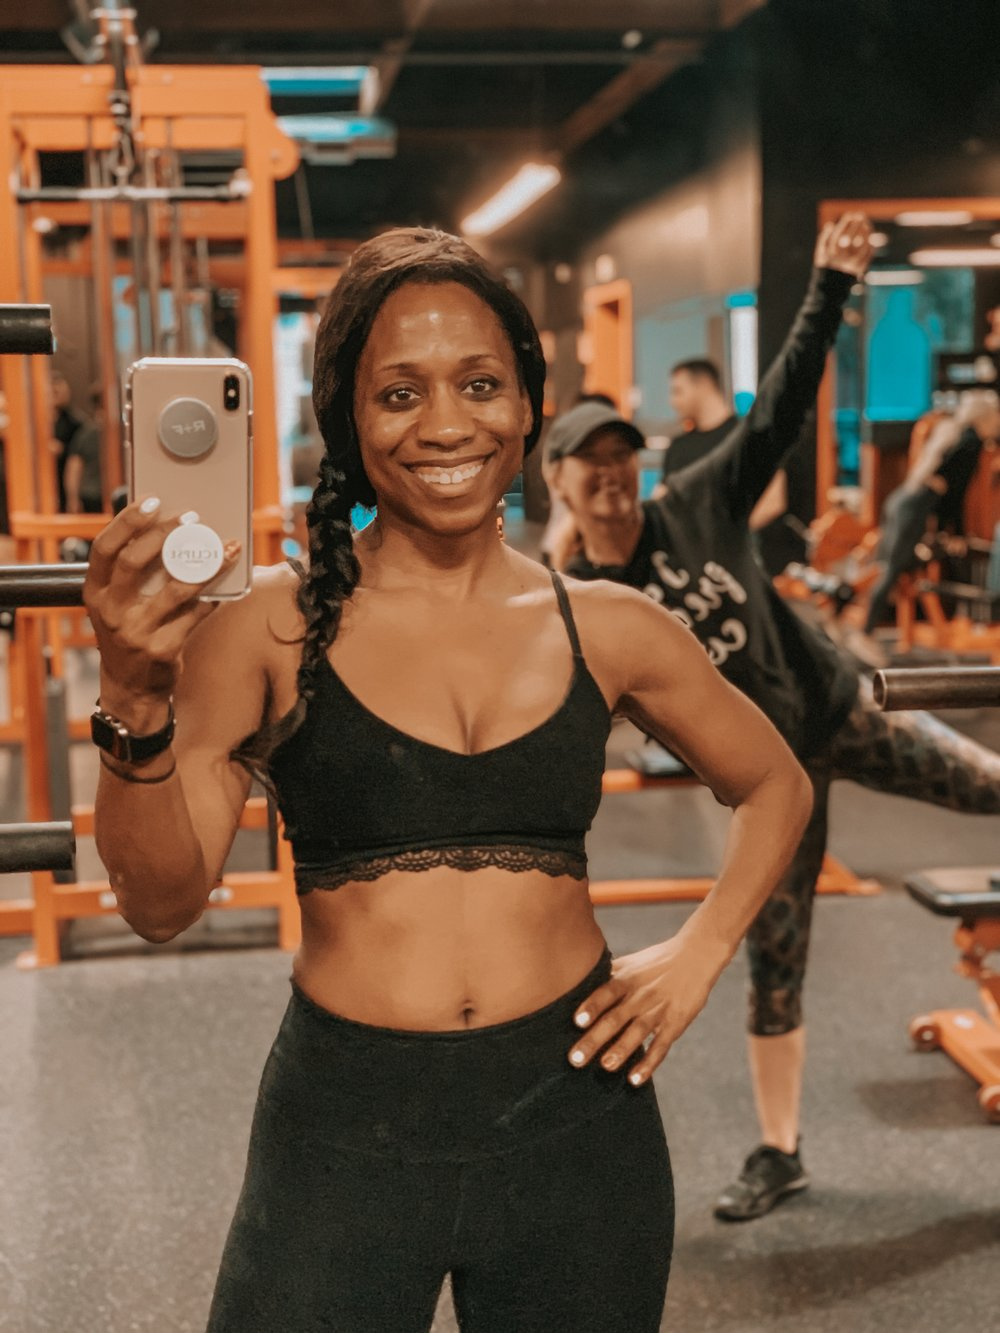 Sometimes I need a little motivation in the workout category. - Can you Relate?